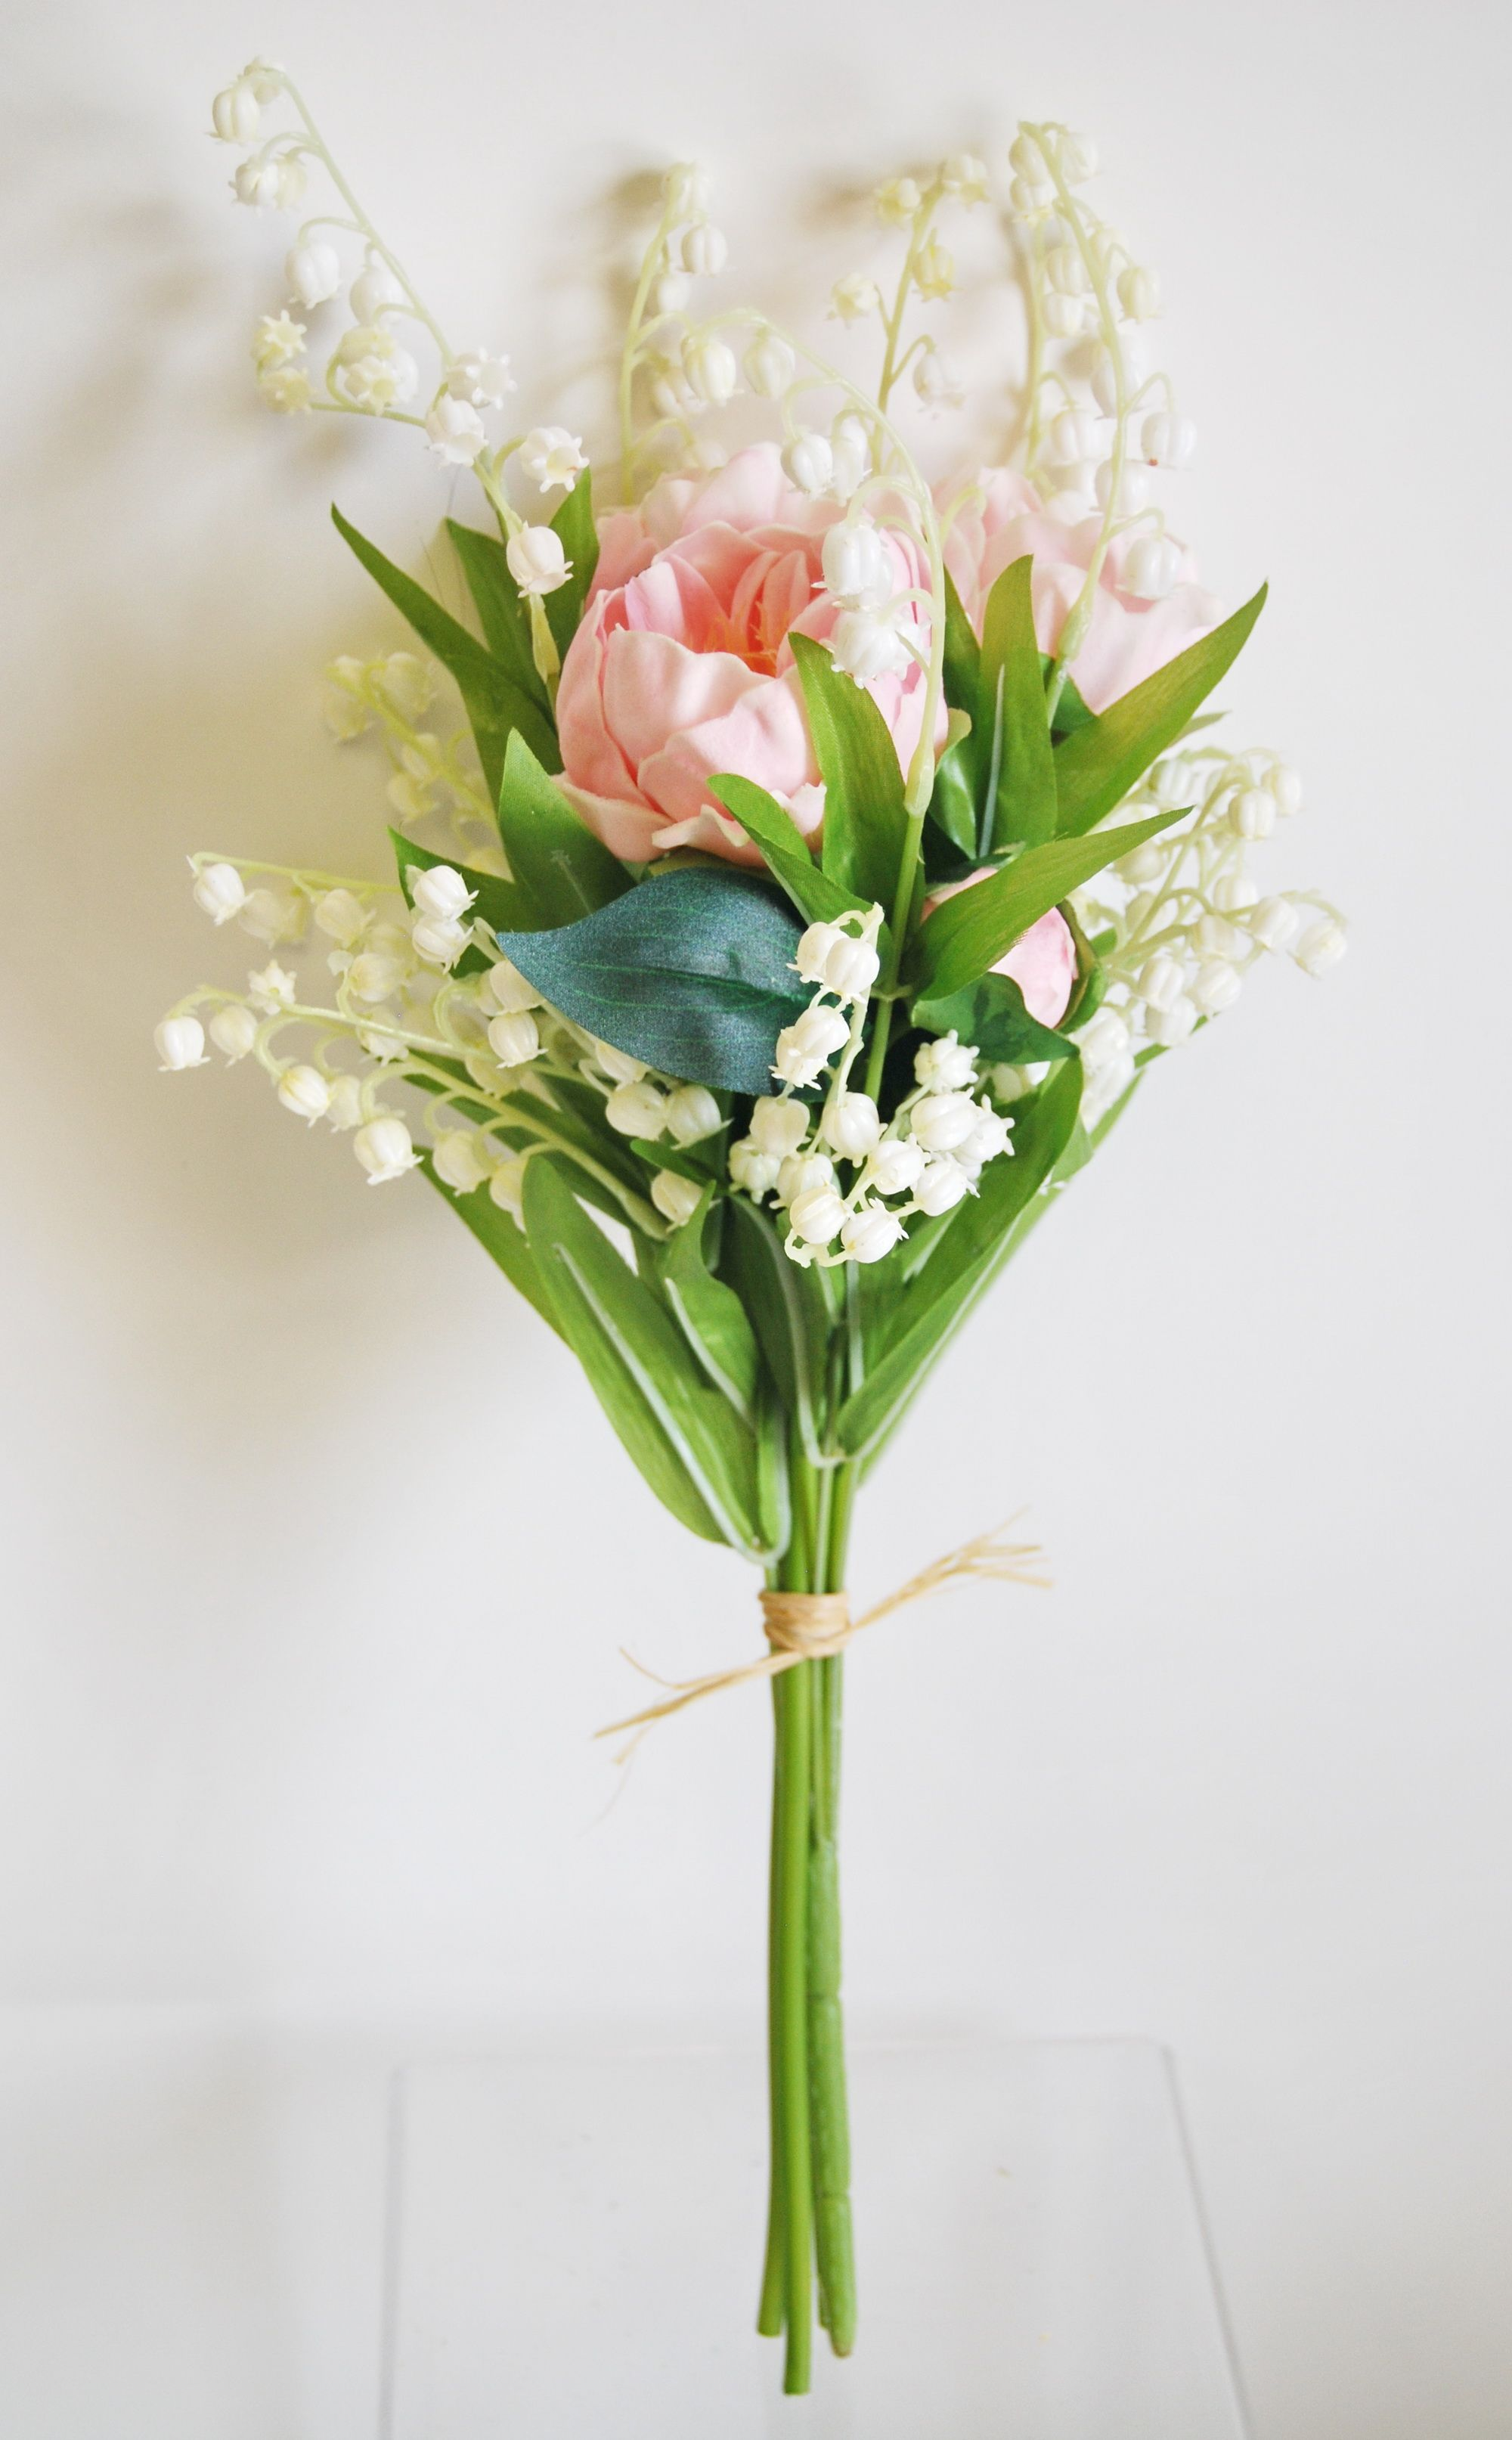 Wb196pk real touch peony lily of the valley bouquet pink wb196pk real touch peony lily of the valley bouquet pink izmirmasajfo